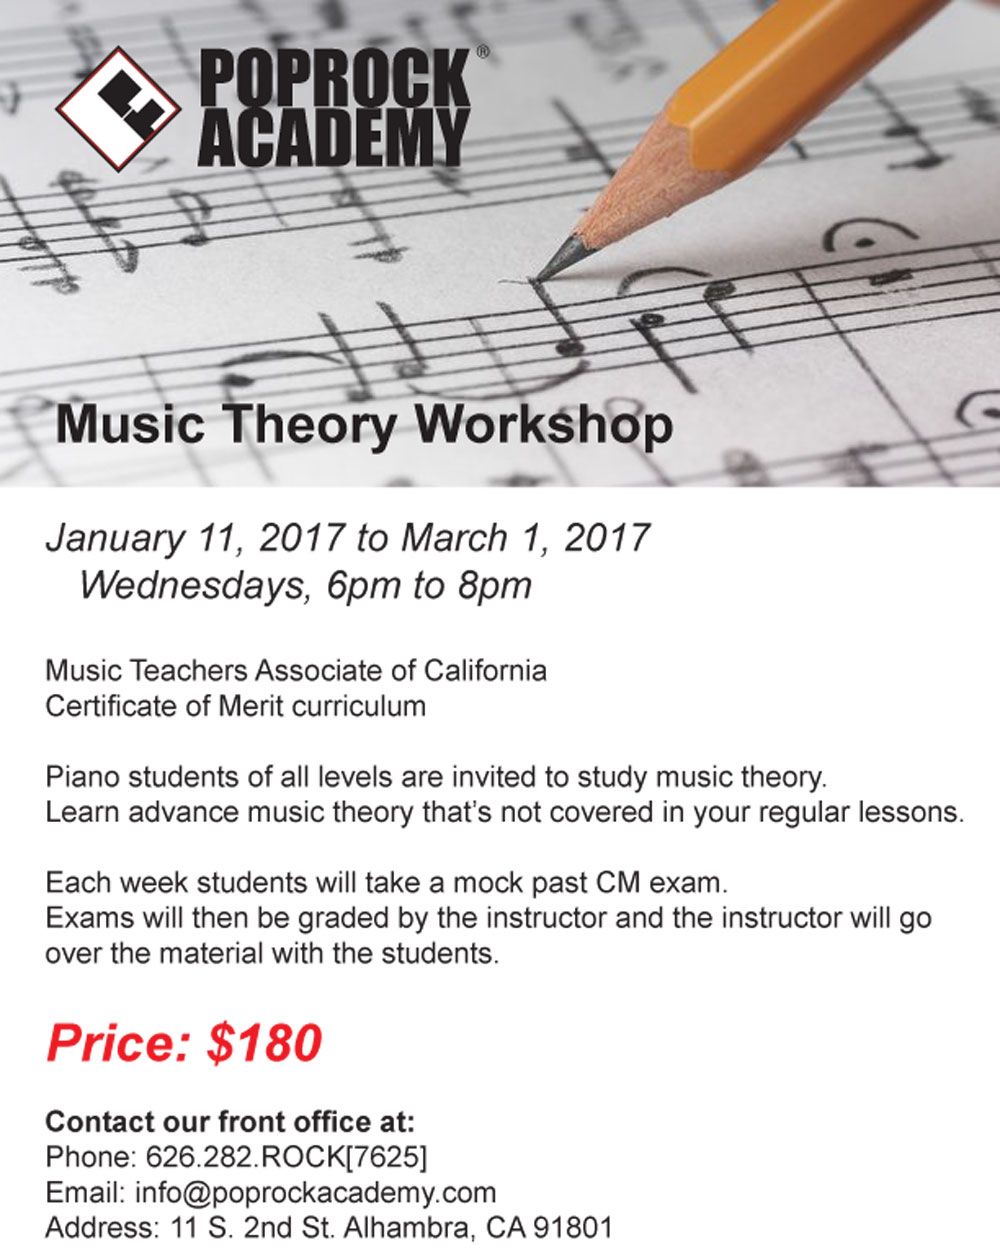 Music Theory Class in alhambra, CA